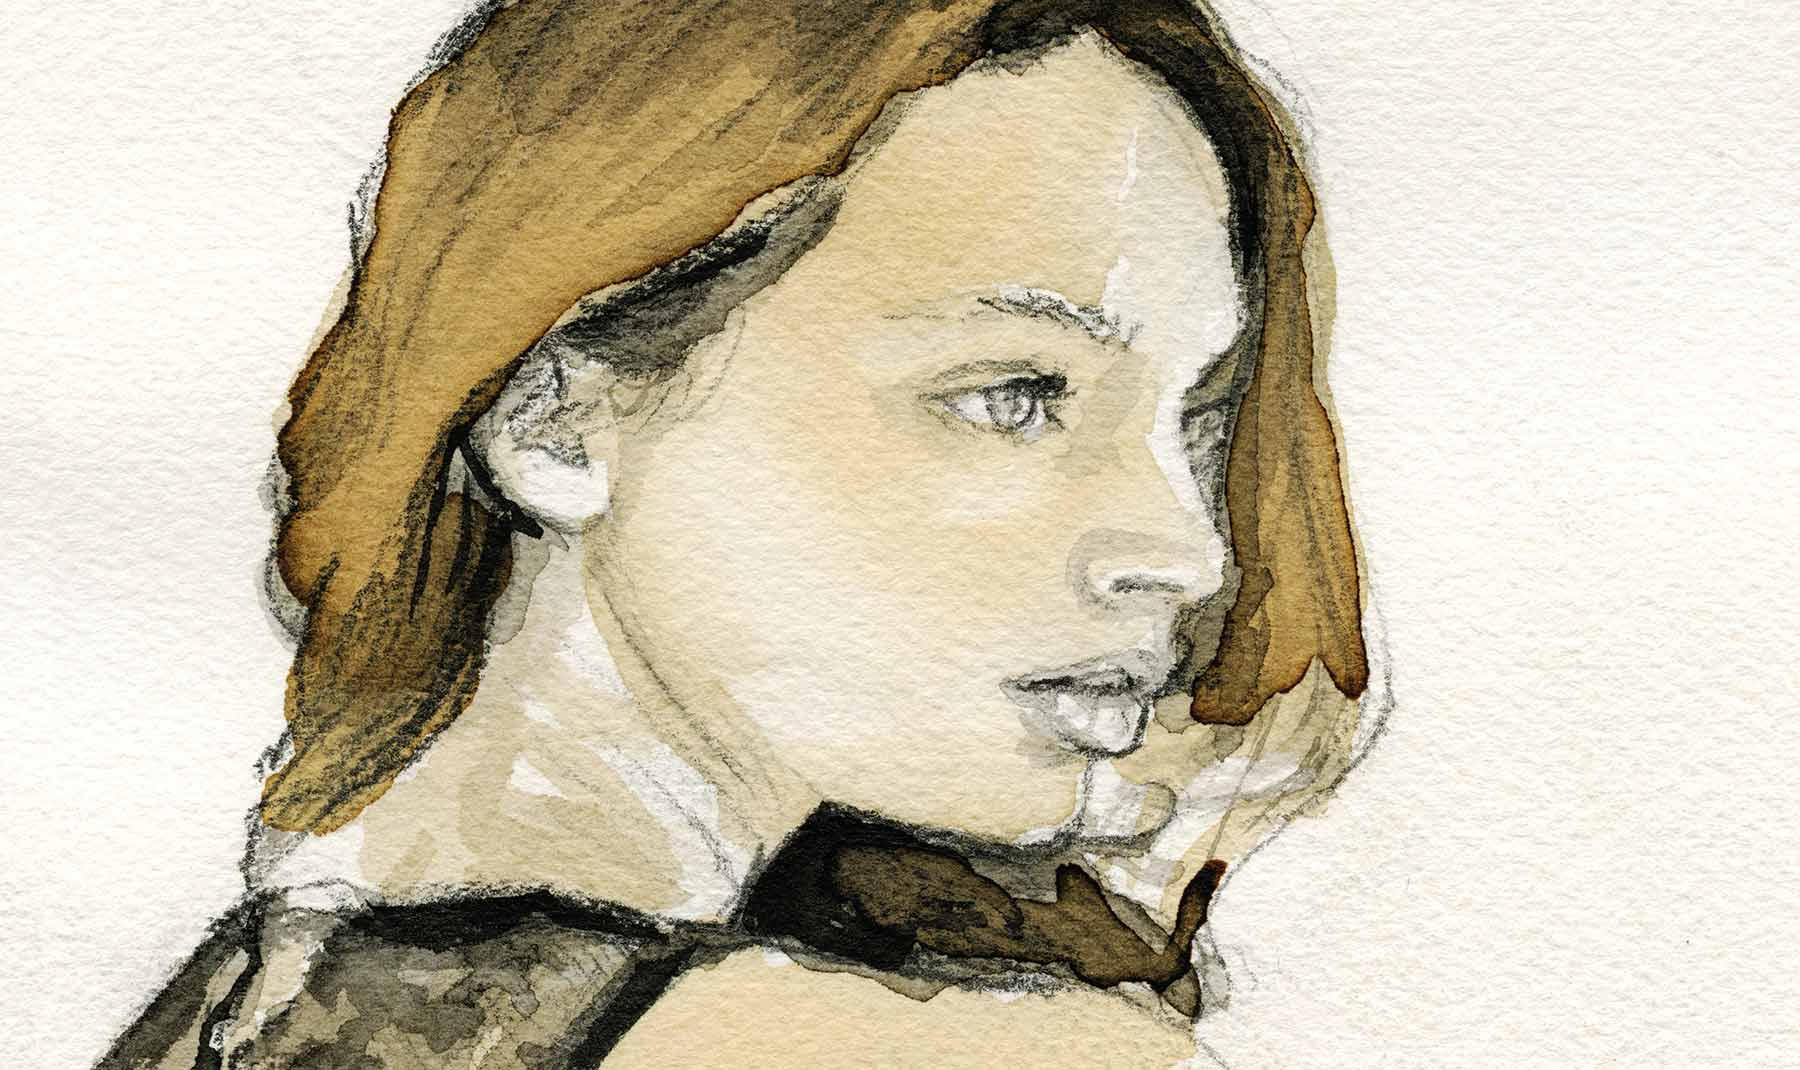 sketch of Mona Johannesson back profile DailyGestureSketches on 12-22-16 Artist Danny Roberts